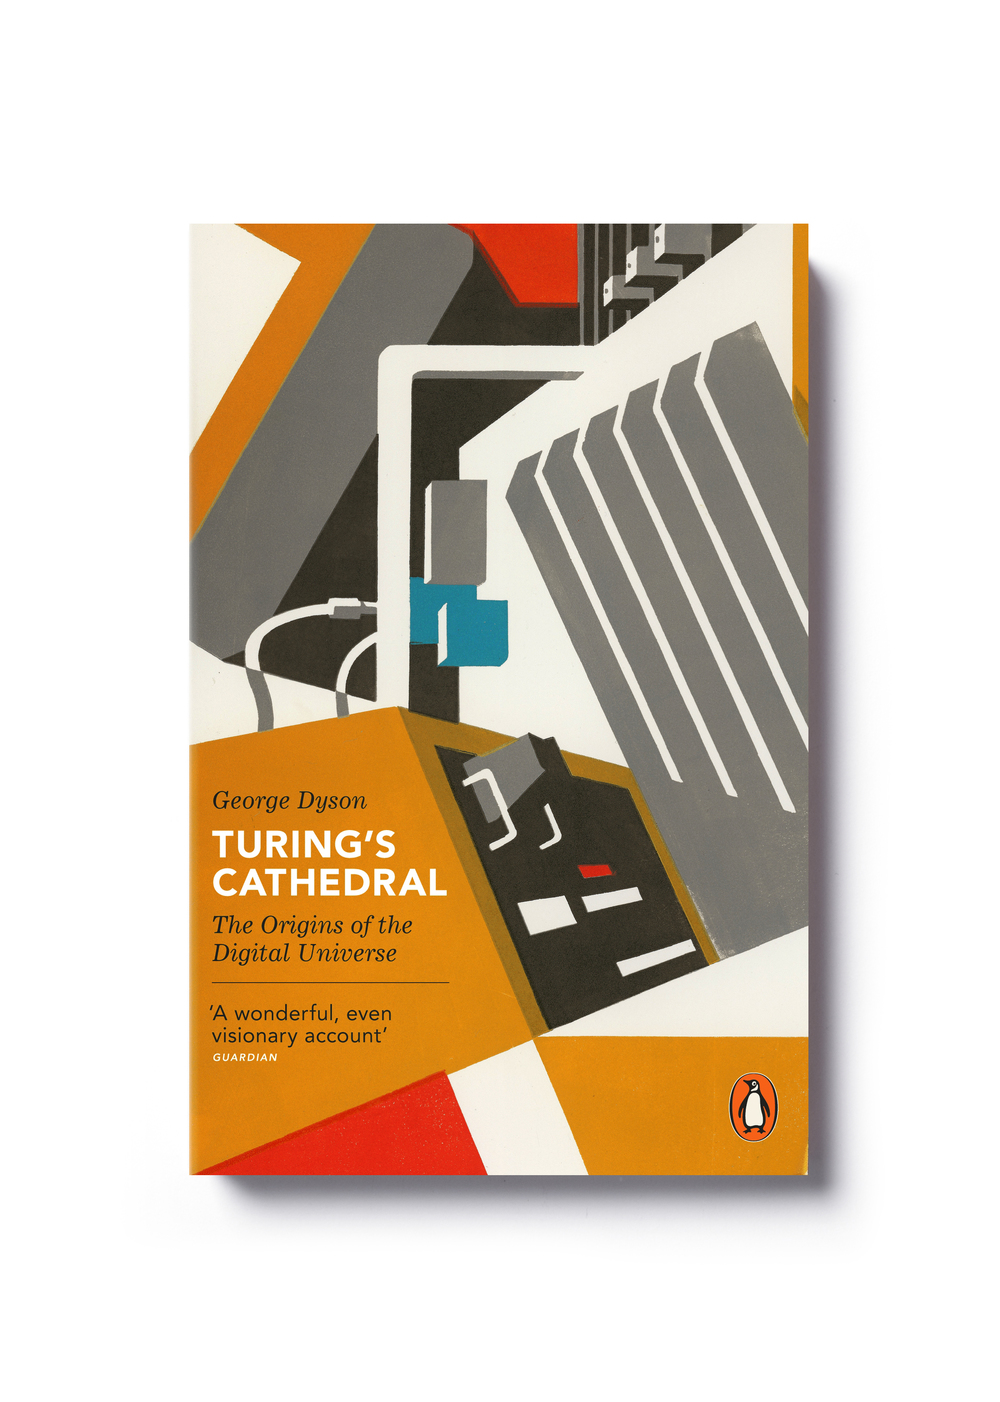 Turing's Cathedral  by George Dyson - Art Direction: Jim Stoddart Art: Paul Catherall Design: Matthew Young